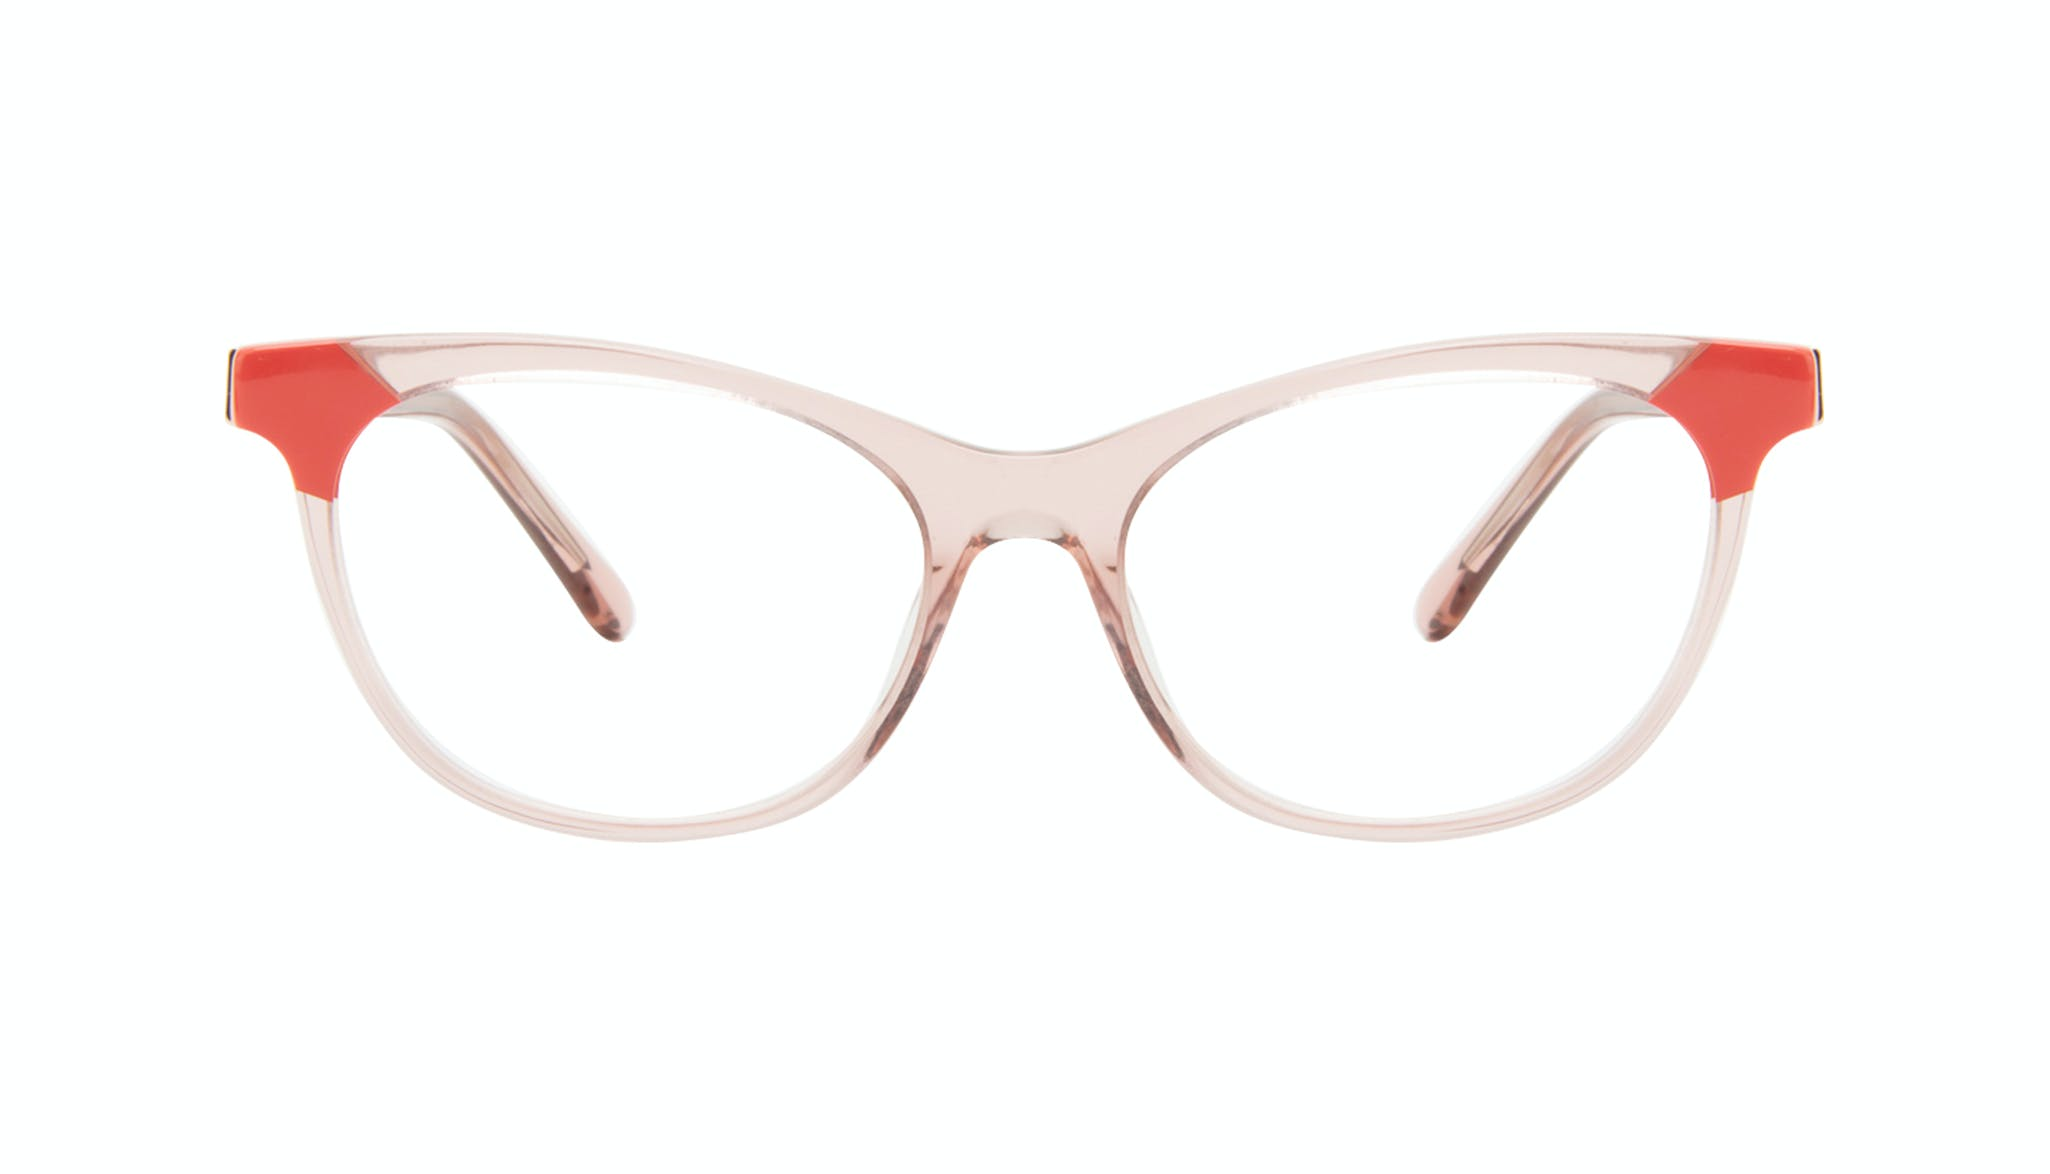 Affordable Fashion Glasses Cat Eye Eyeglasses Women Witty Pink Coral